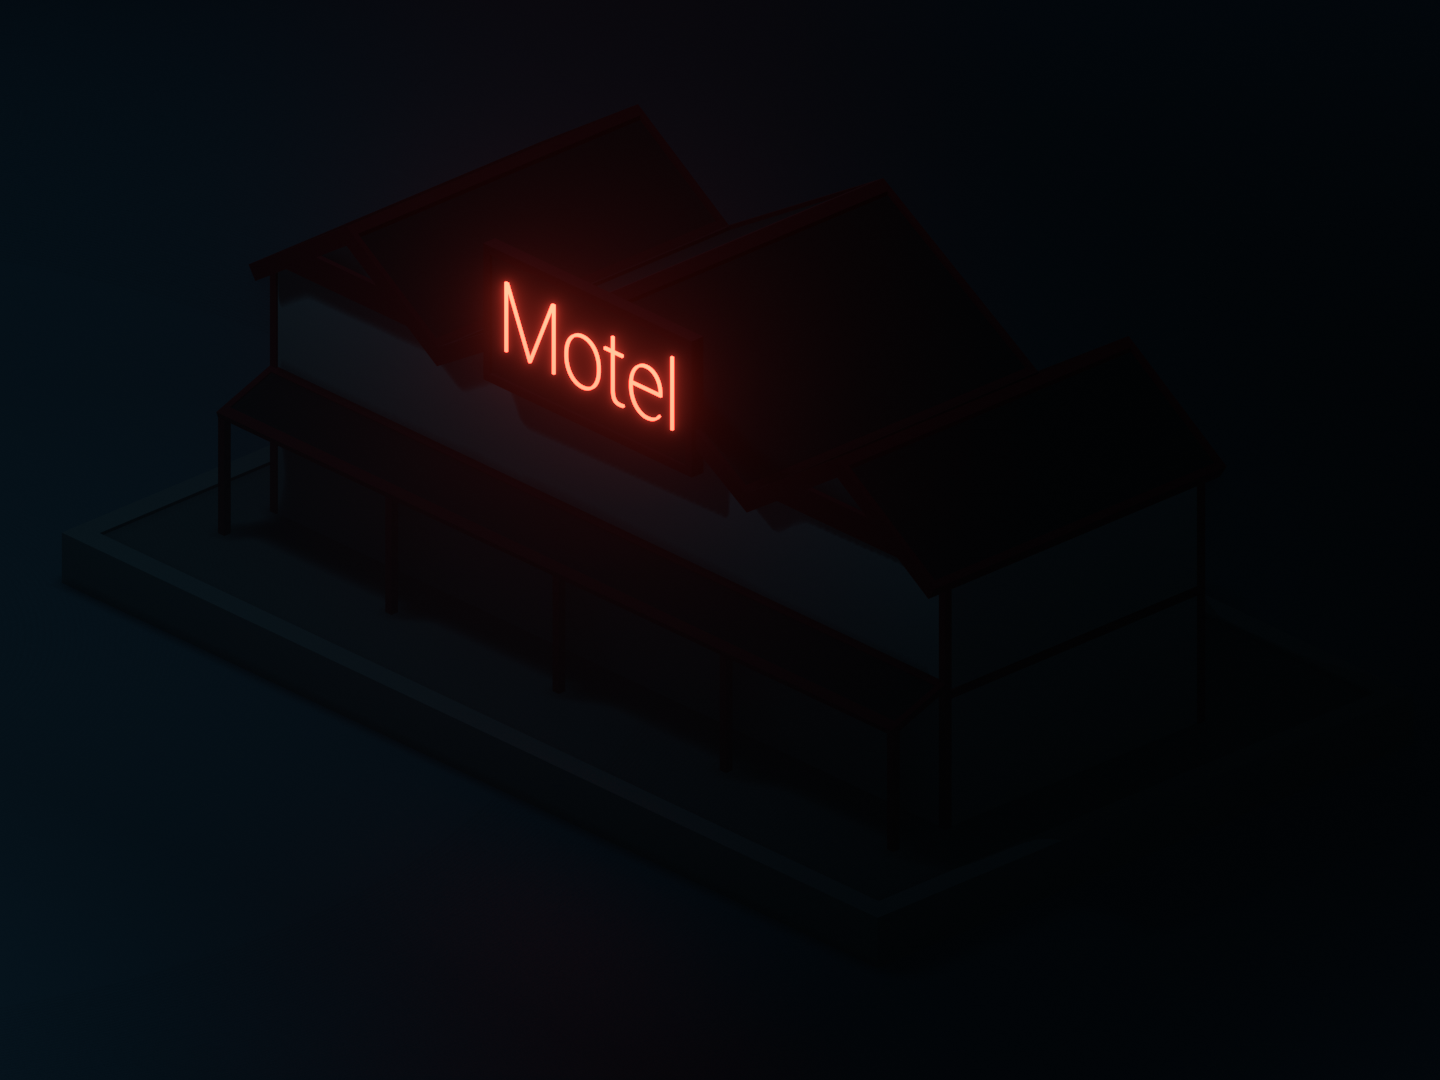 Night lowpoly motel moonlight motel night illumination isometric art isometric art low poly art lowpolyart low poly lowpoly blender3d blender b3d 3d art 3d